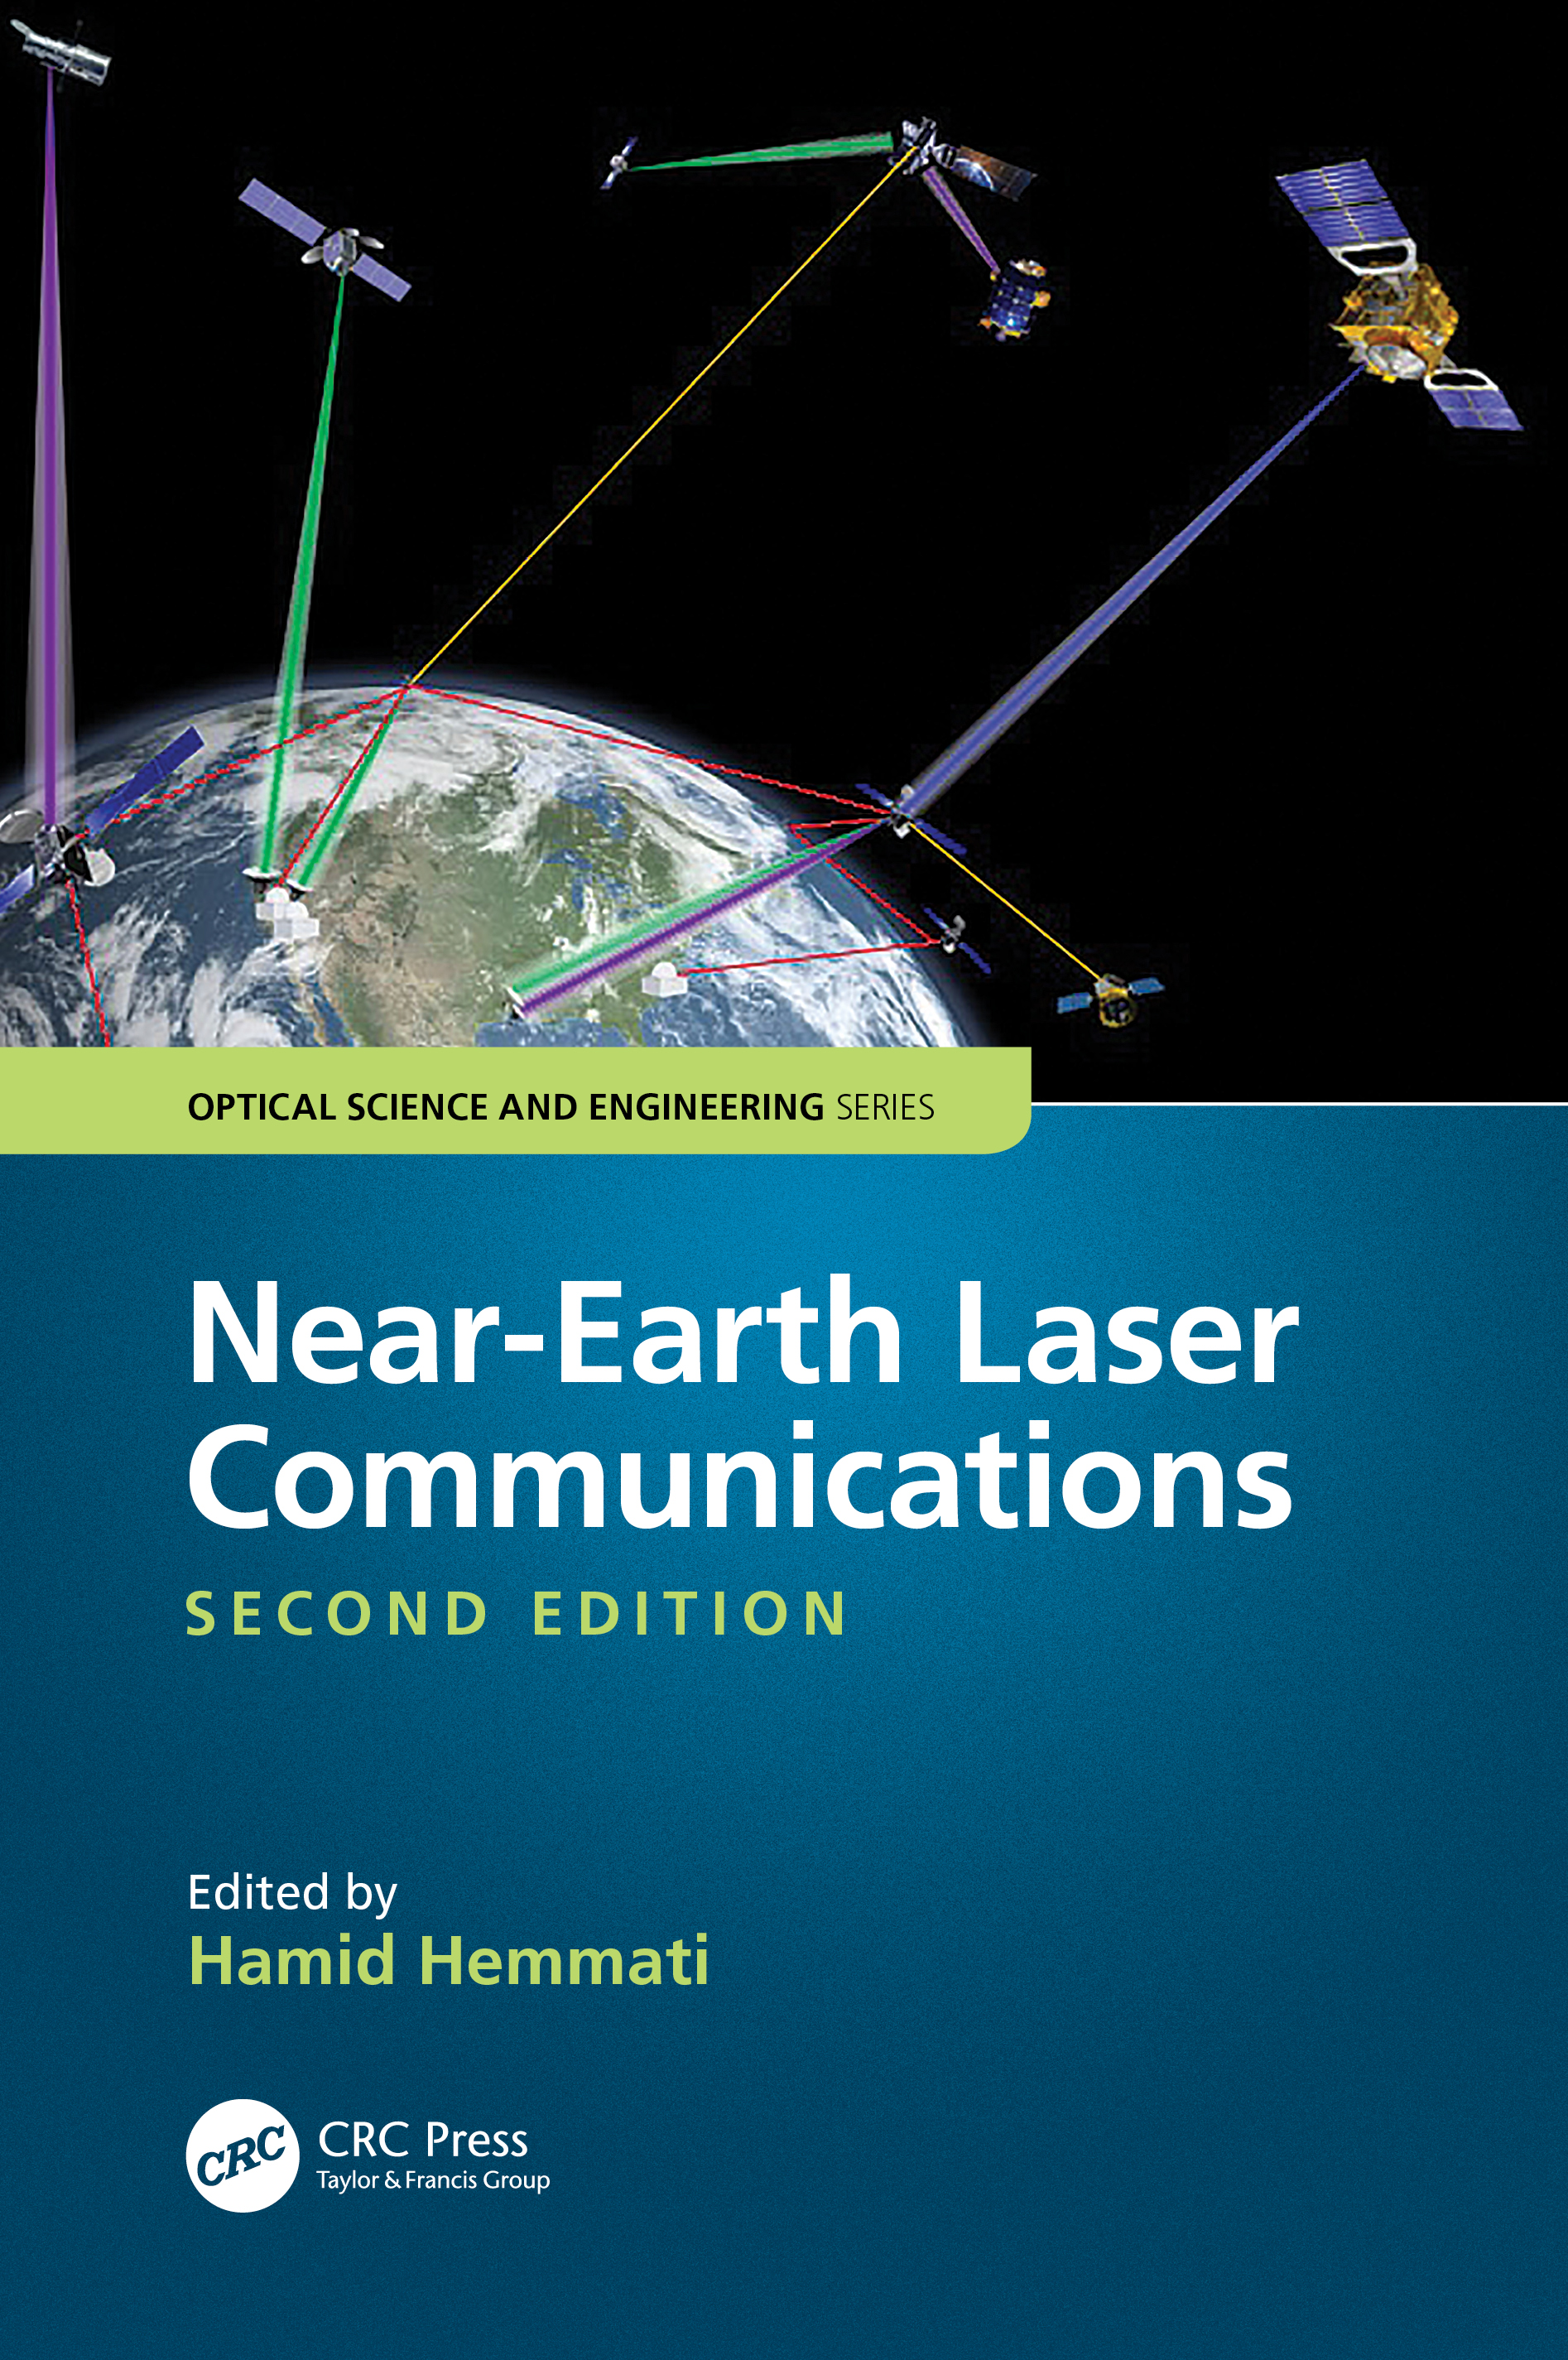 Near-Earth Laser Communications, Second Edition book cover